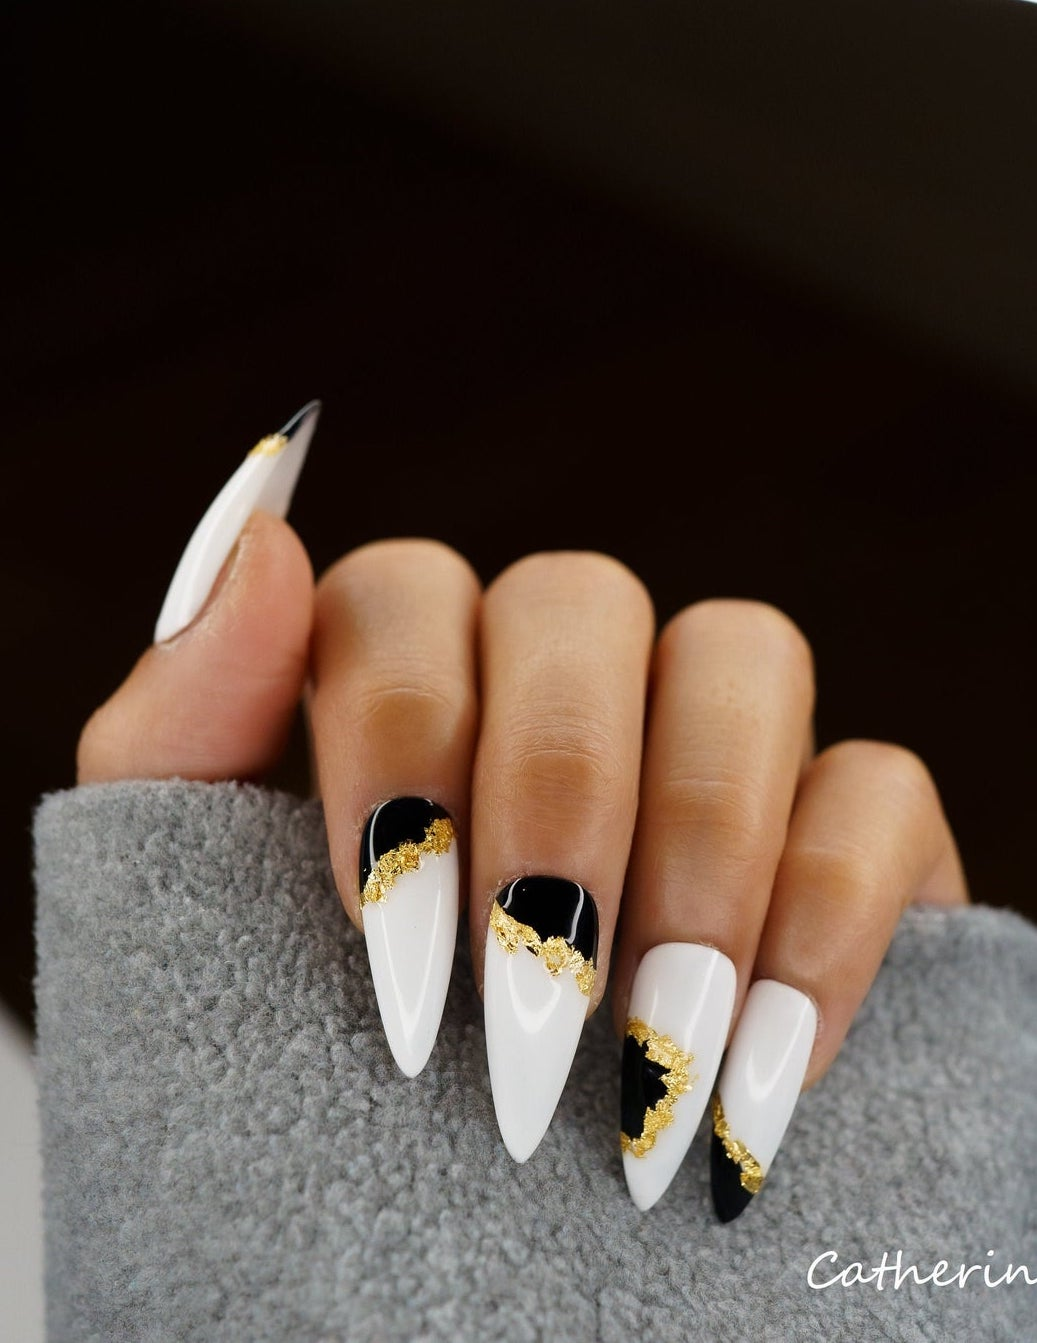 Black and white nails with gold specks